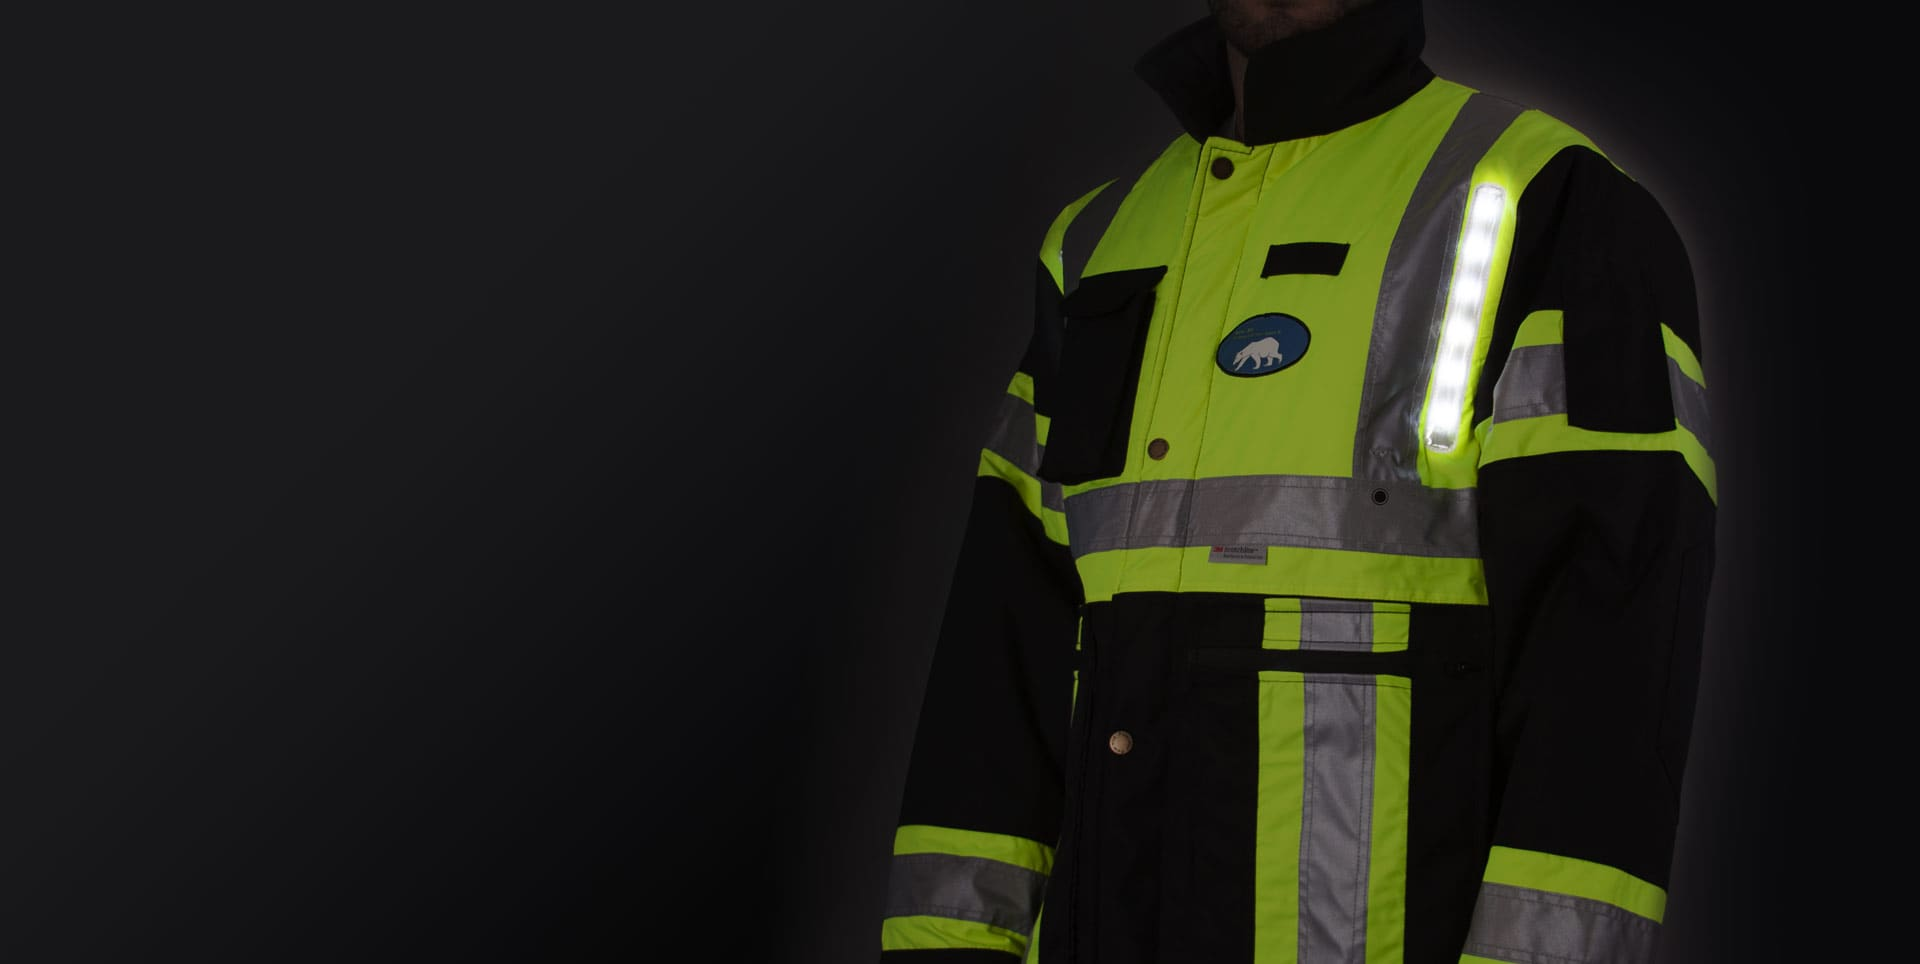 LED lit Safety Jacket